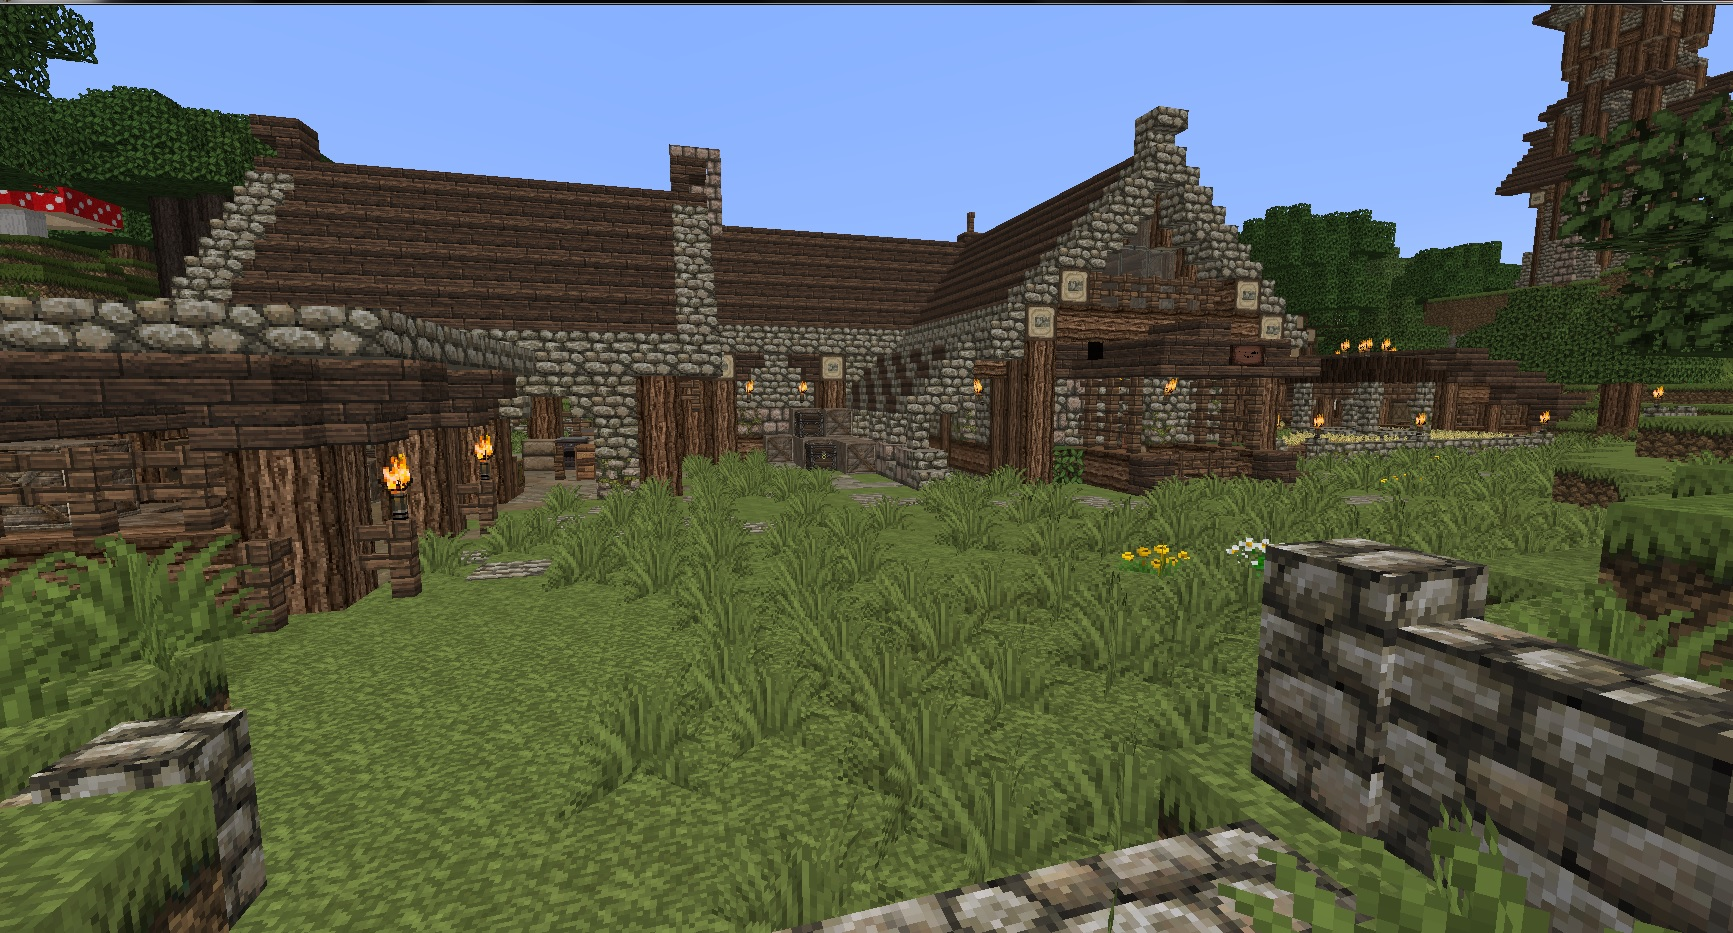 Rustic Medieval World at Minecraft - mods and community